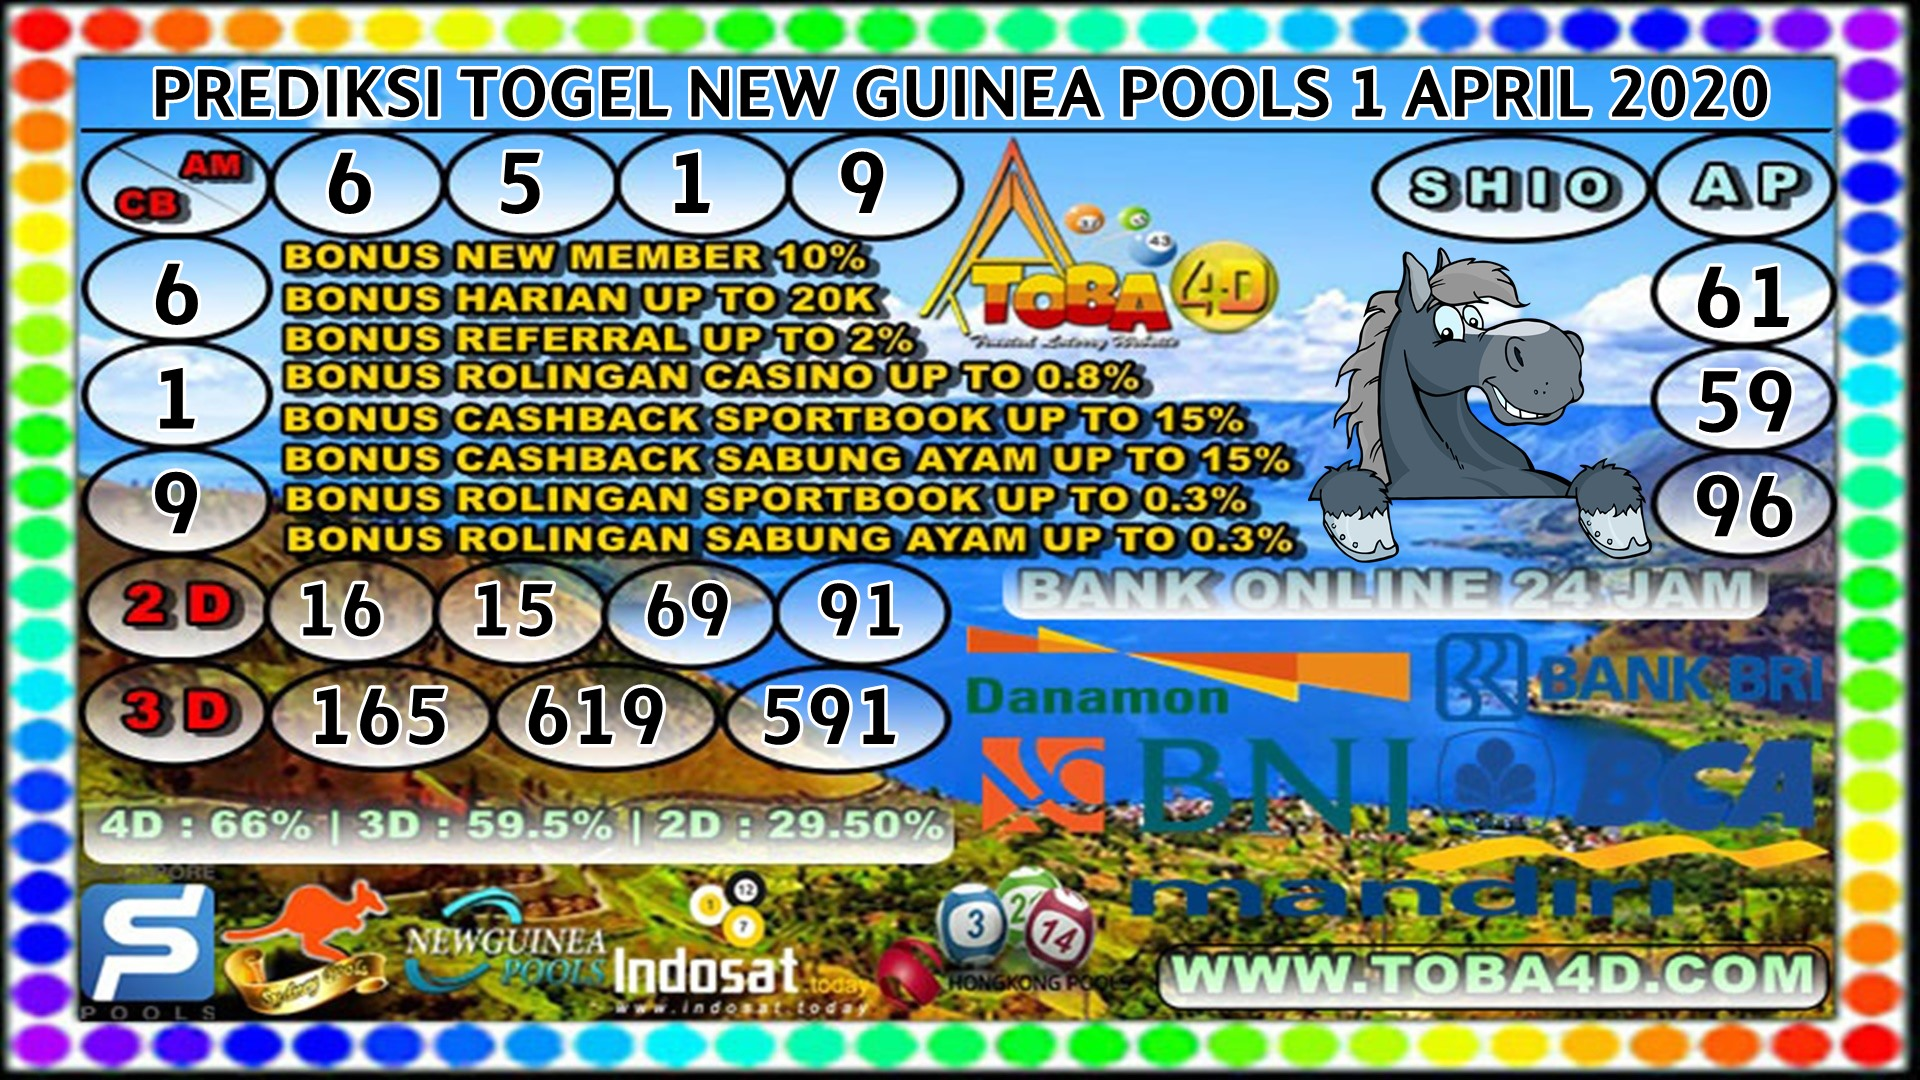 PREDIKSI TOGEL NEW GUINEA POOLS 1 APRIL 2020